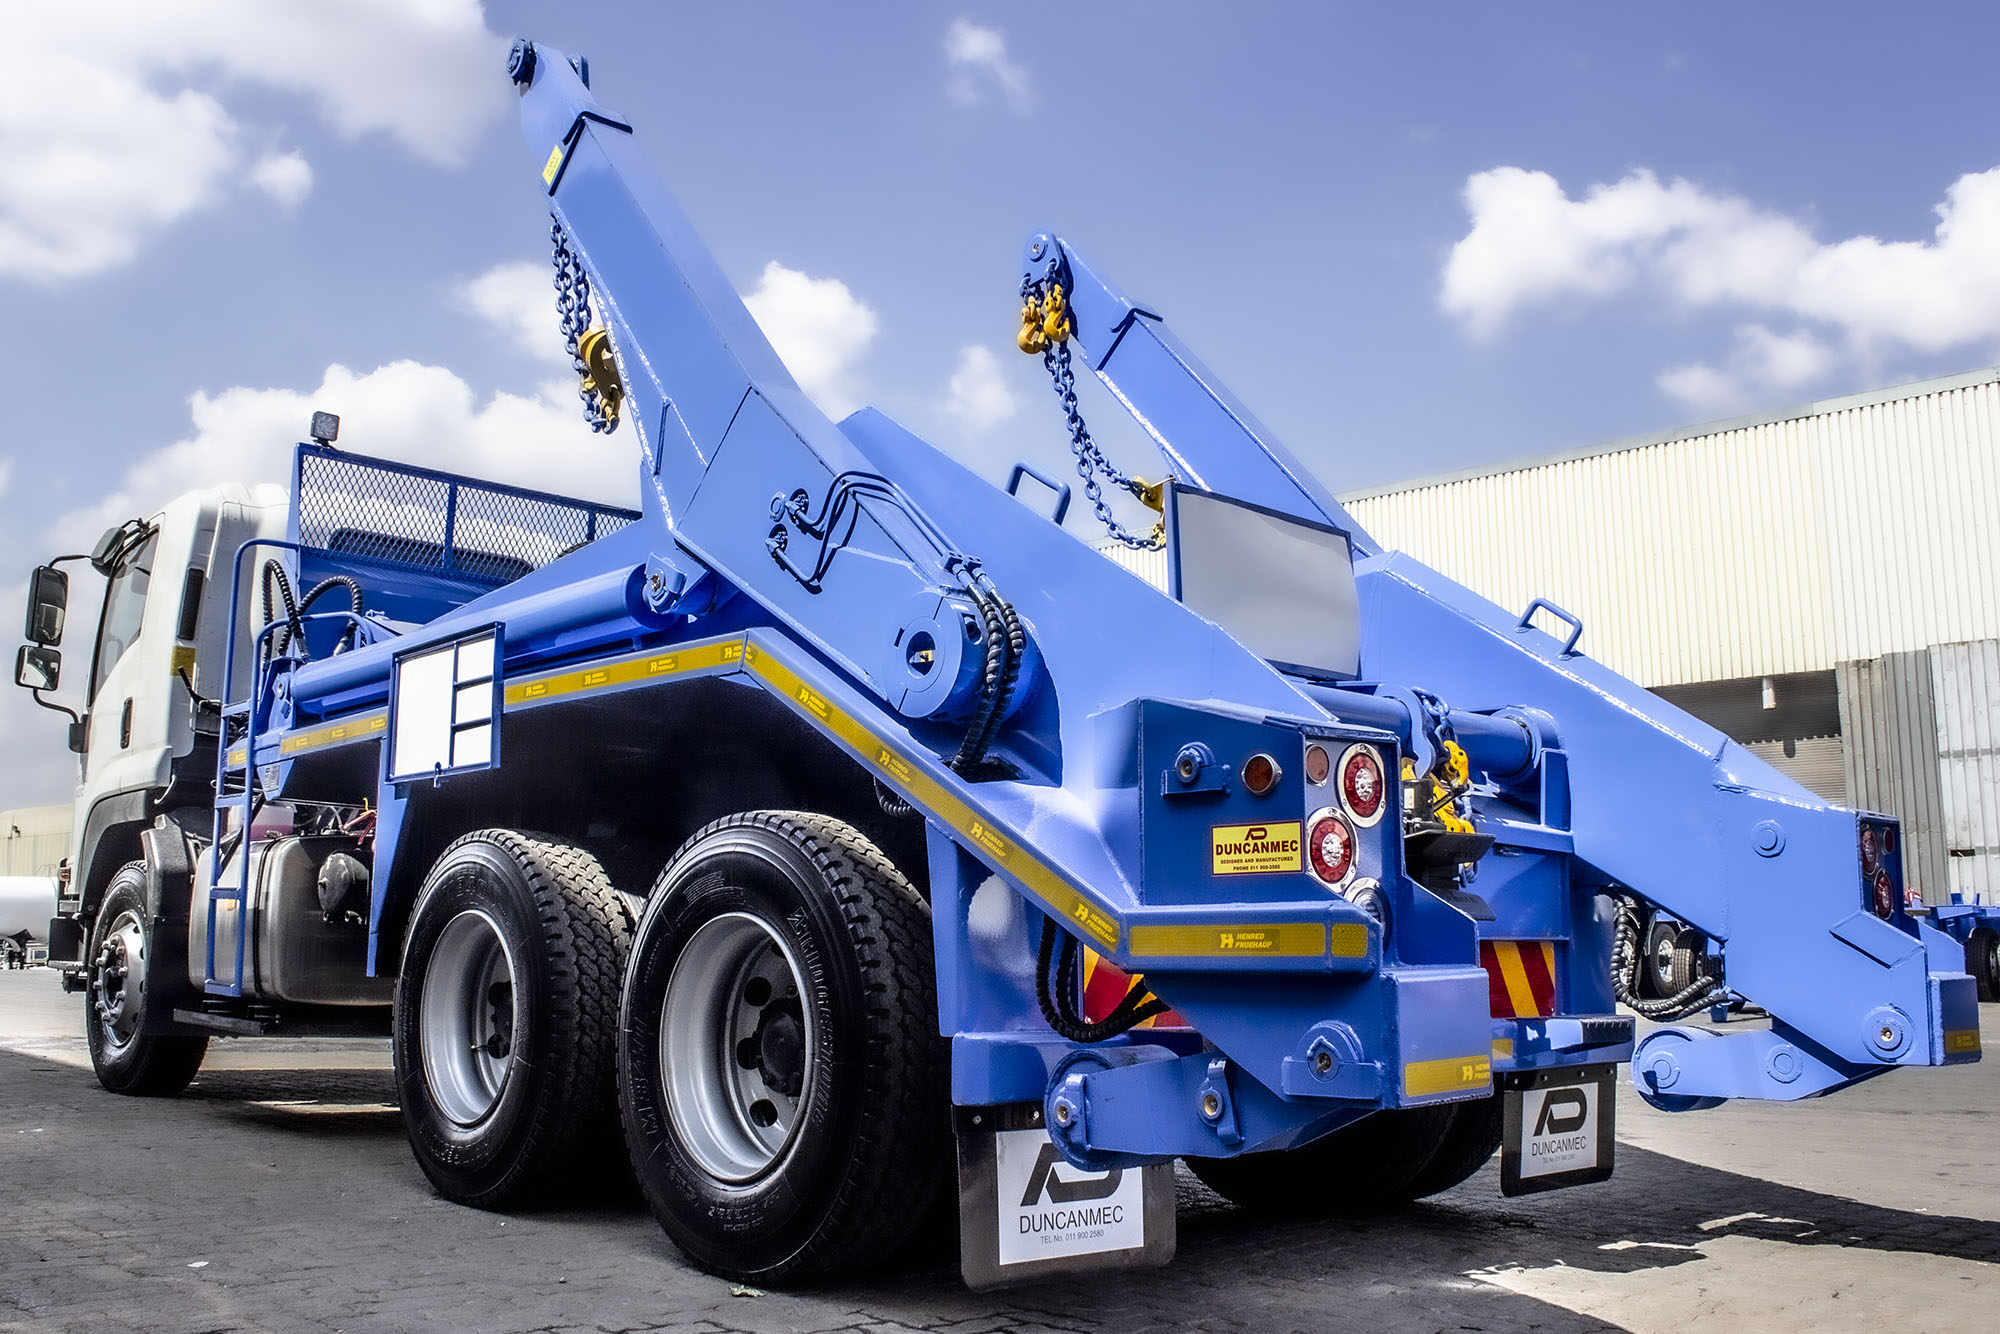 Duncanmec is a manufacturing company specializing in Refuse Handling Equipment and Dry Bulk Road Tankers.